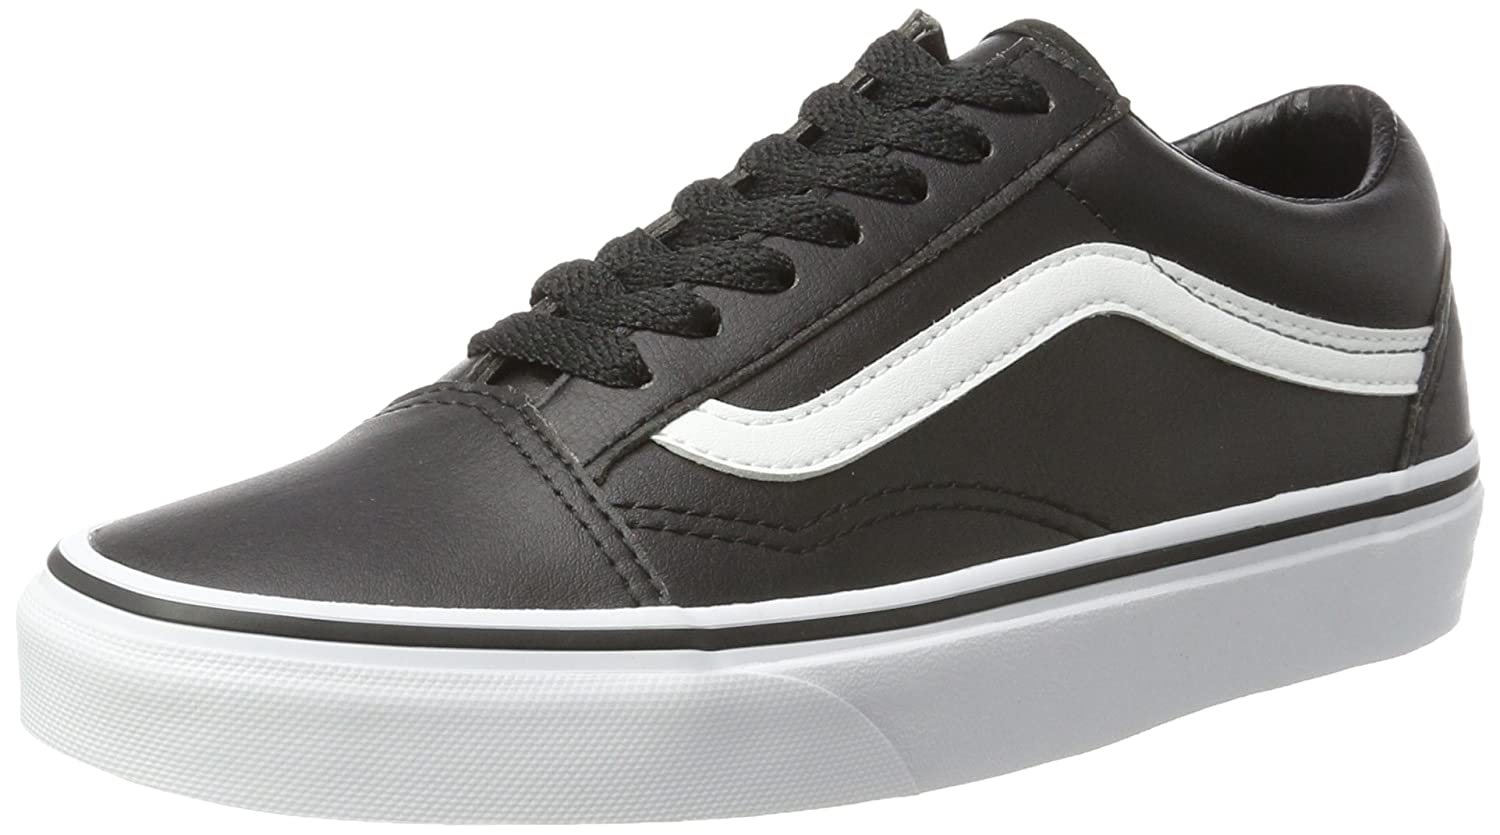 Vans Unisex Old Skool Classic Skate Shoes B01MXW6EGB 13 B(M) US Women / 11.5 D(M) US Men|(Classic Tumble) Black/True White